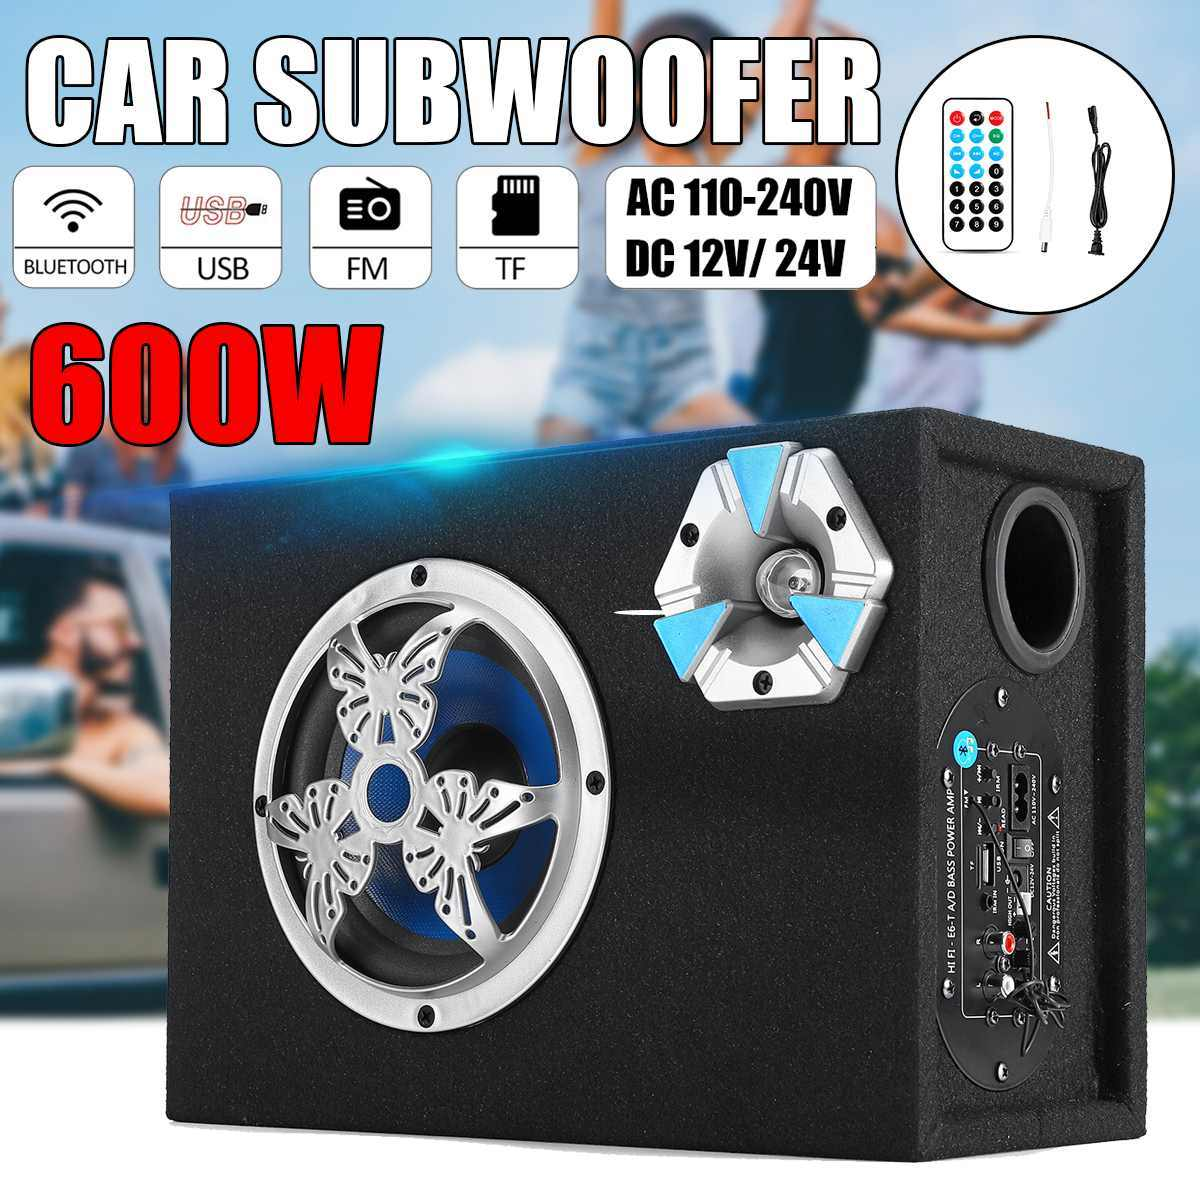 6 inch 600W bluetooth Car Subwoofer Speaker Bass Auto Stereo Amplifier Home Audio USB/ TF Cards/ FM Radio Remote Control